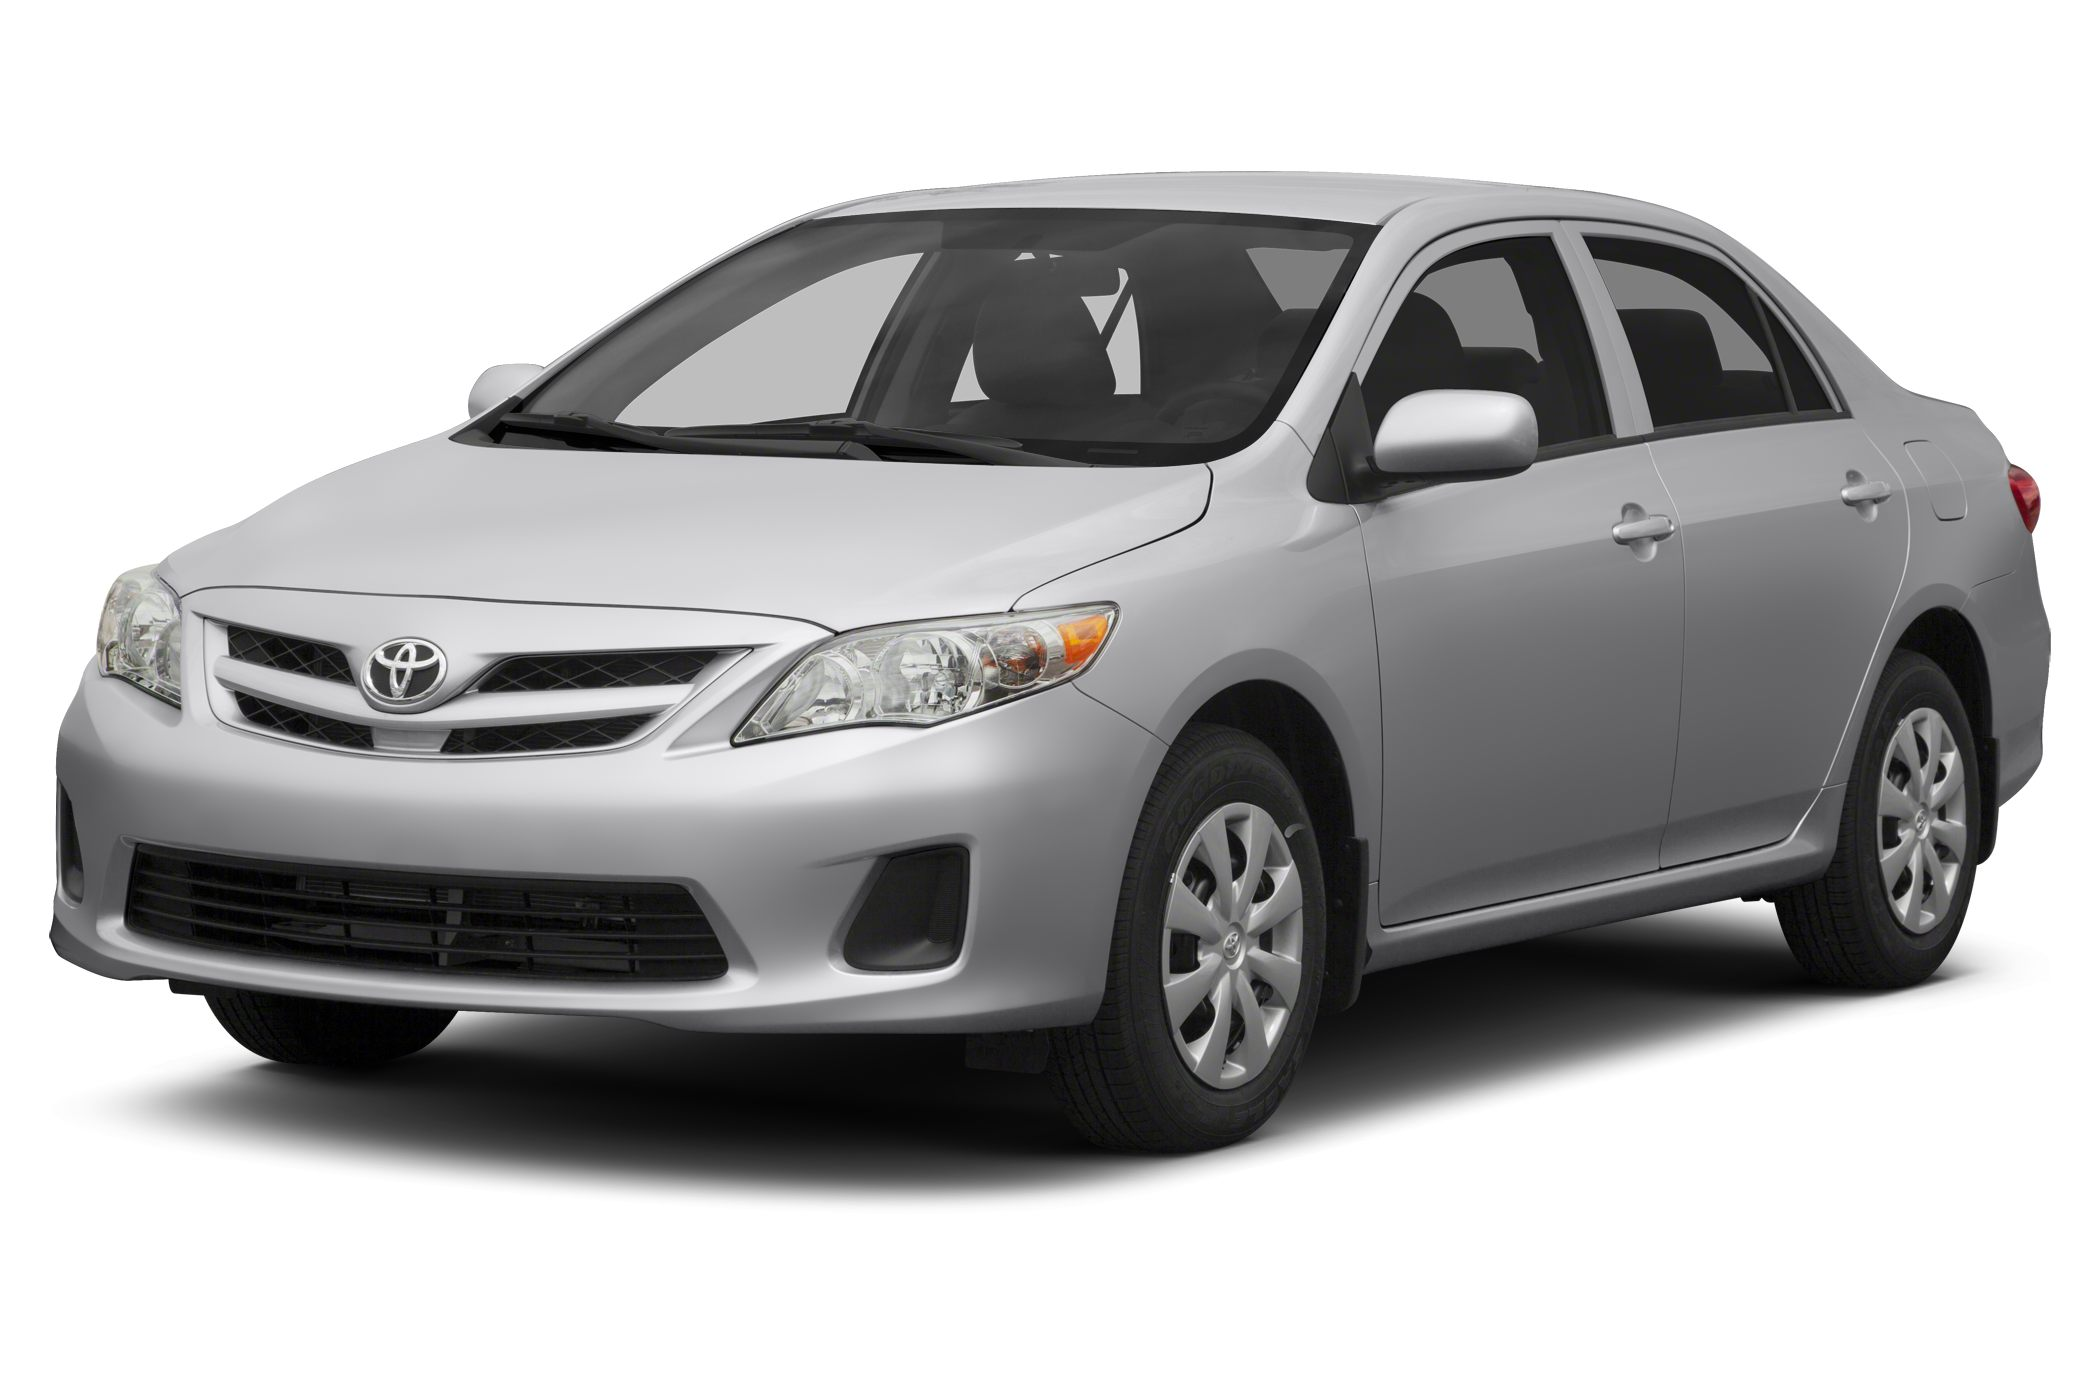 2013 Toyota Corolla LE LE trim CARFAX 1-Owner FUEL EFFICIENT 34 MPG Hwy26 MPG City Bluetooth